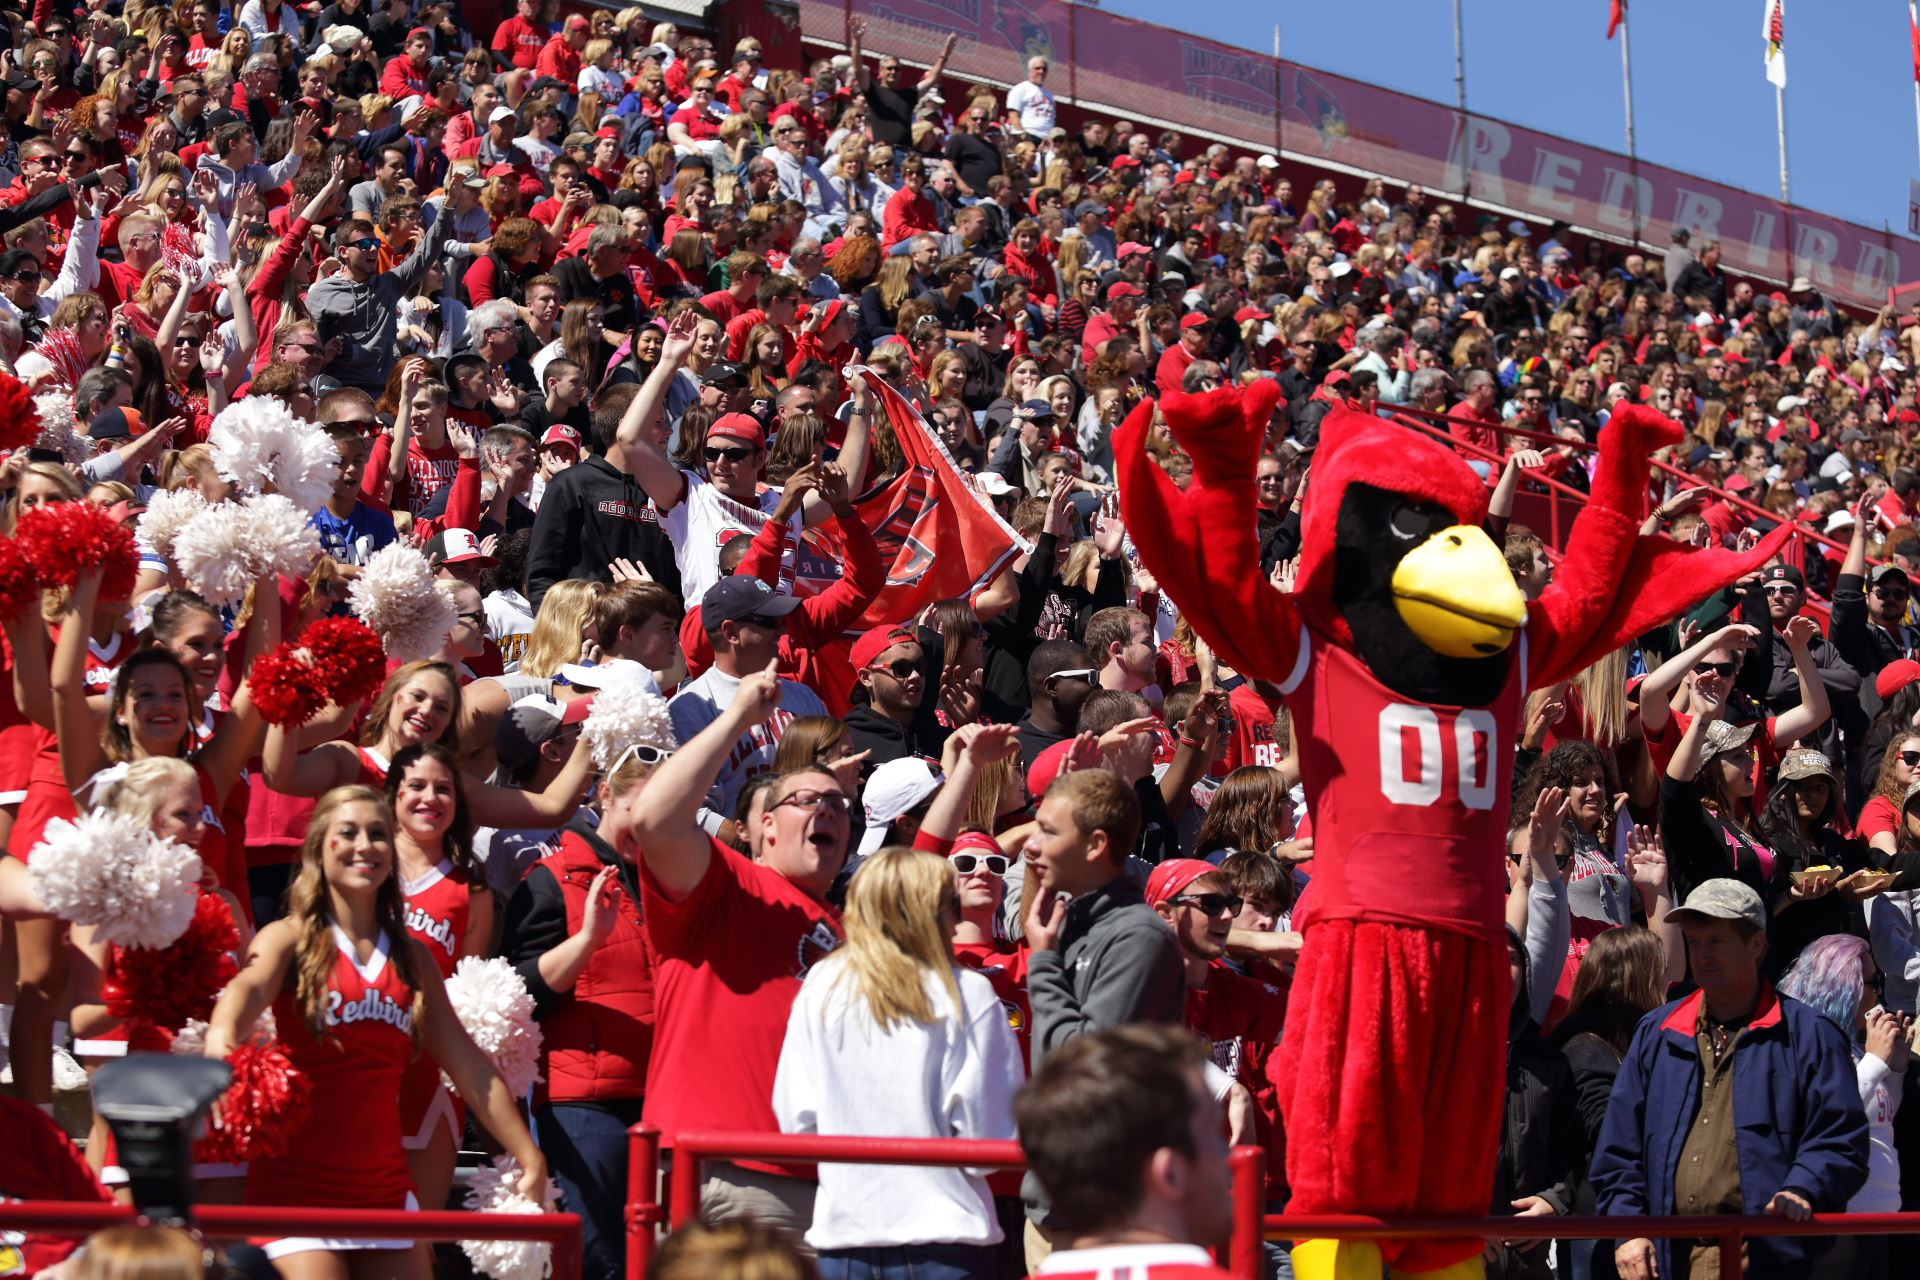 ILLINOIS STATE ATHLETICS, WJBC AGREE ON NEW 5-YEAR DEAL